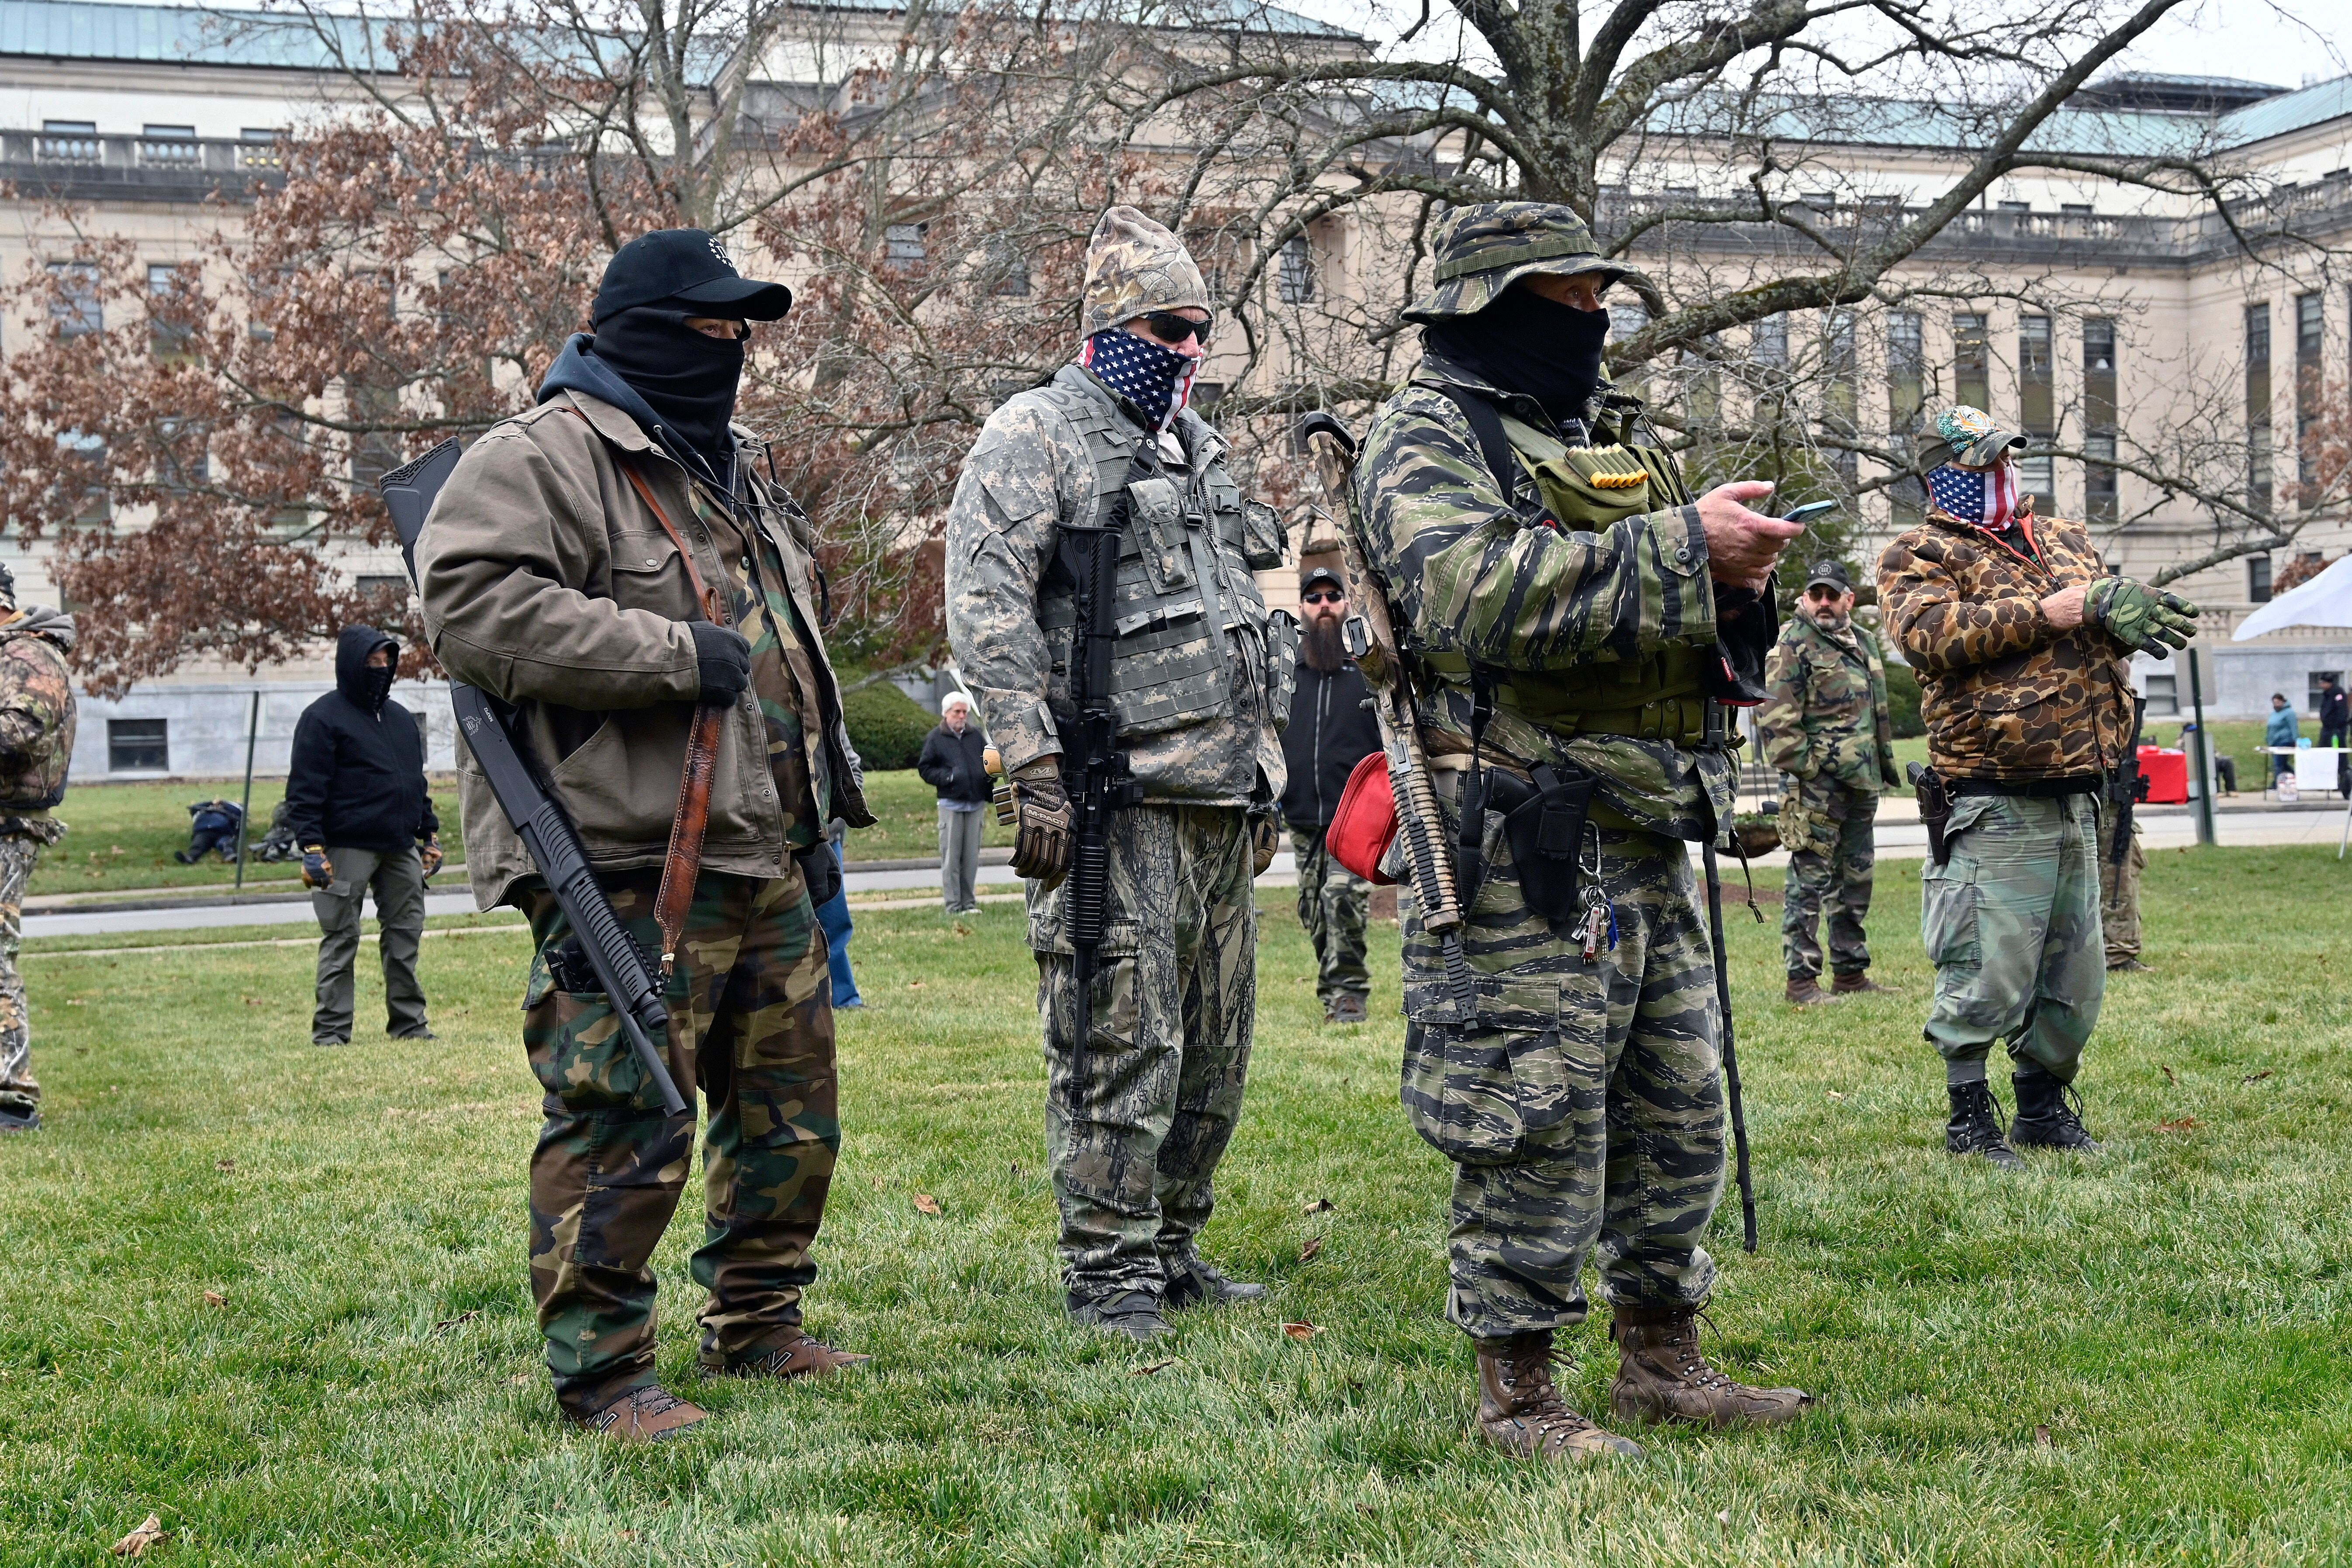 Kentucky lawmakers reported seeing more robust security in place after the Capitol riots in Washington. An armed protest took